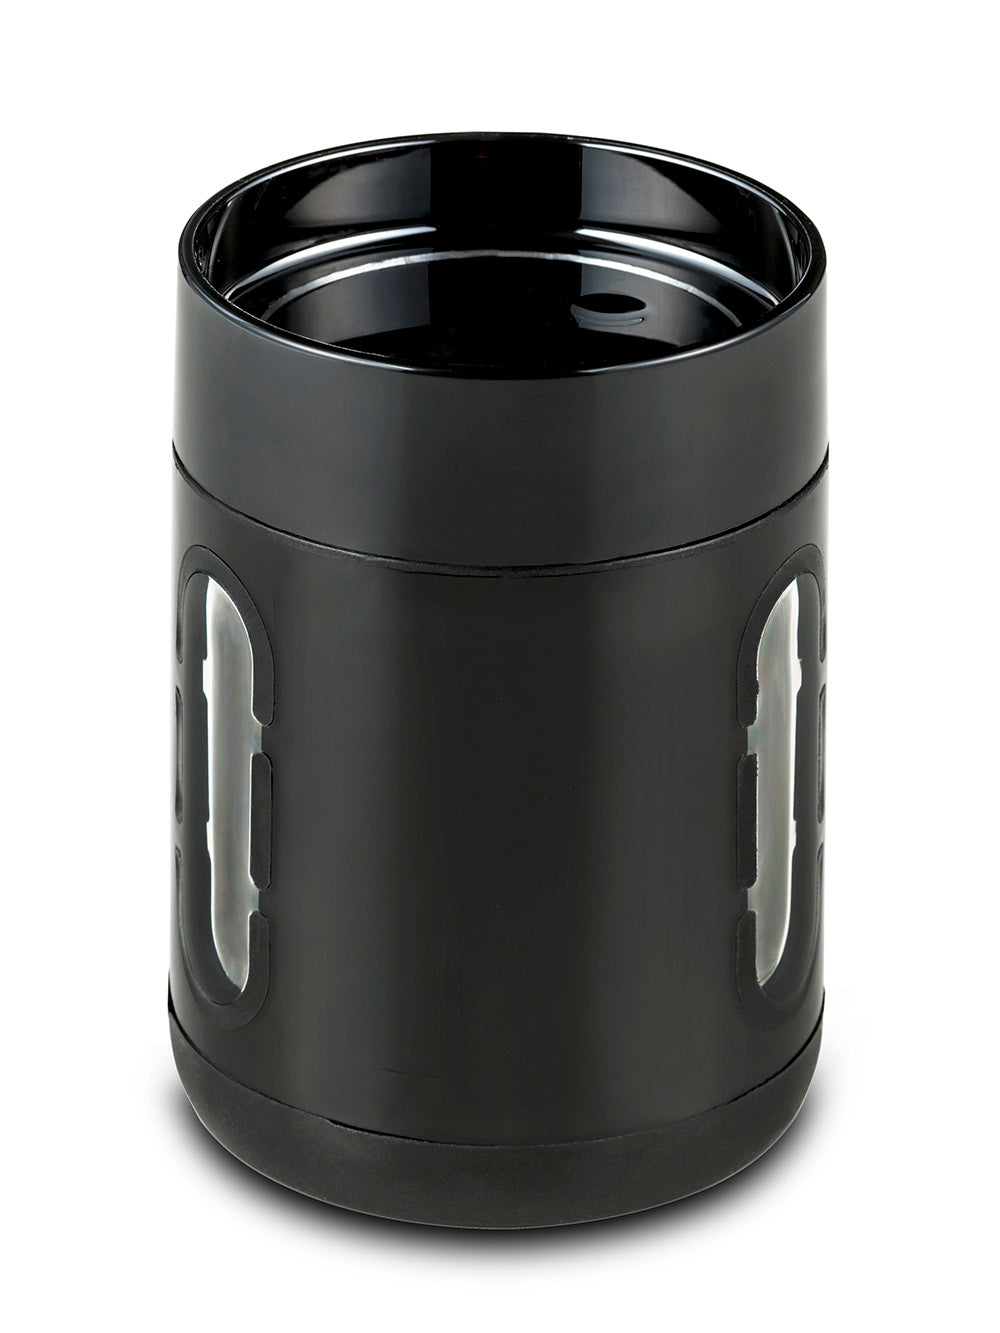 Palm Caffe Cup - Black